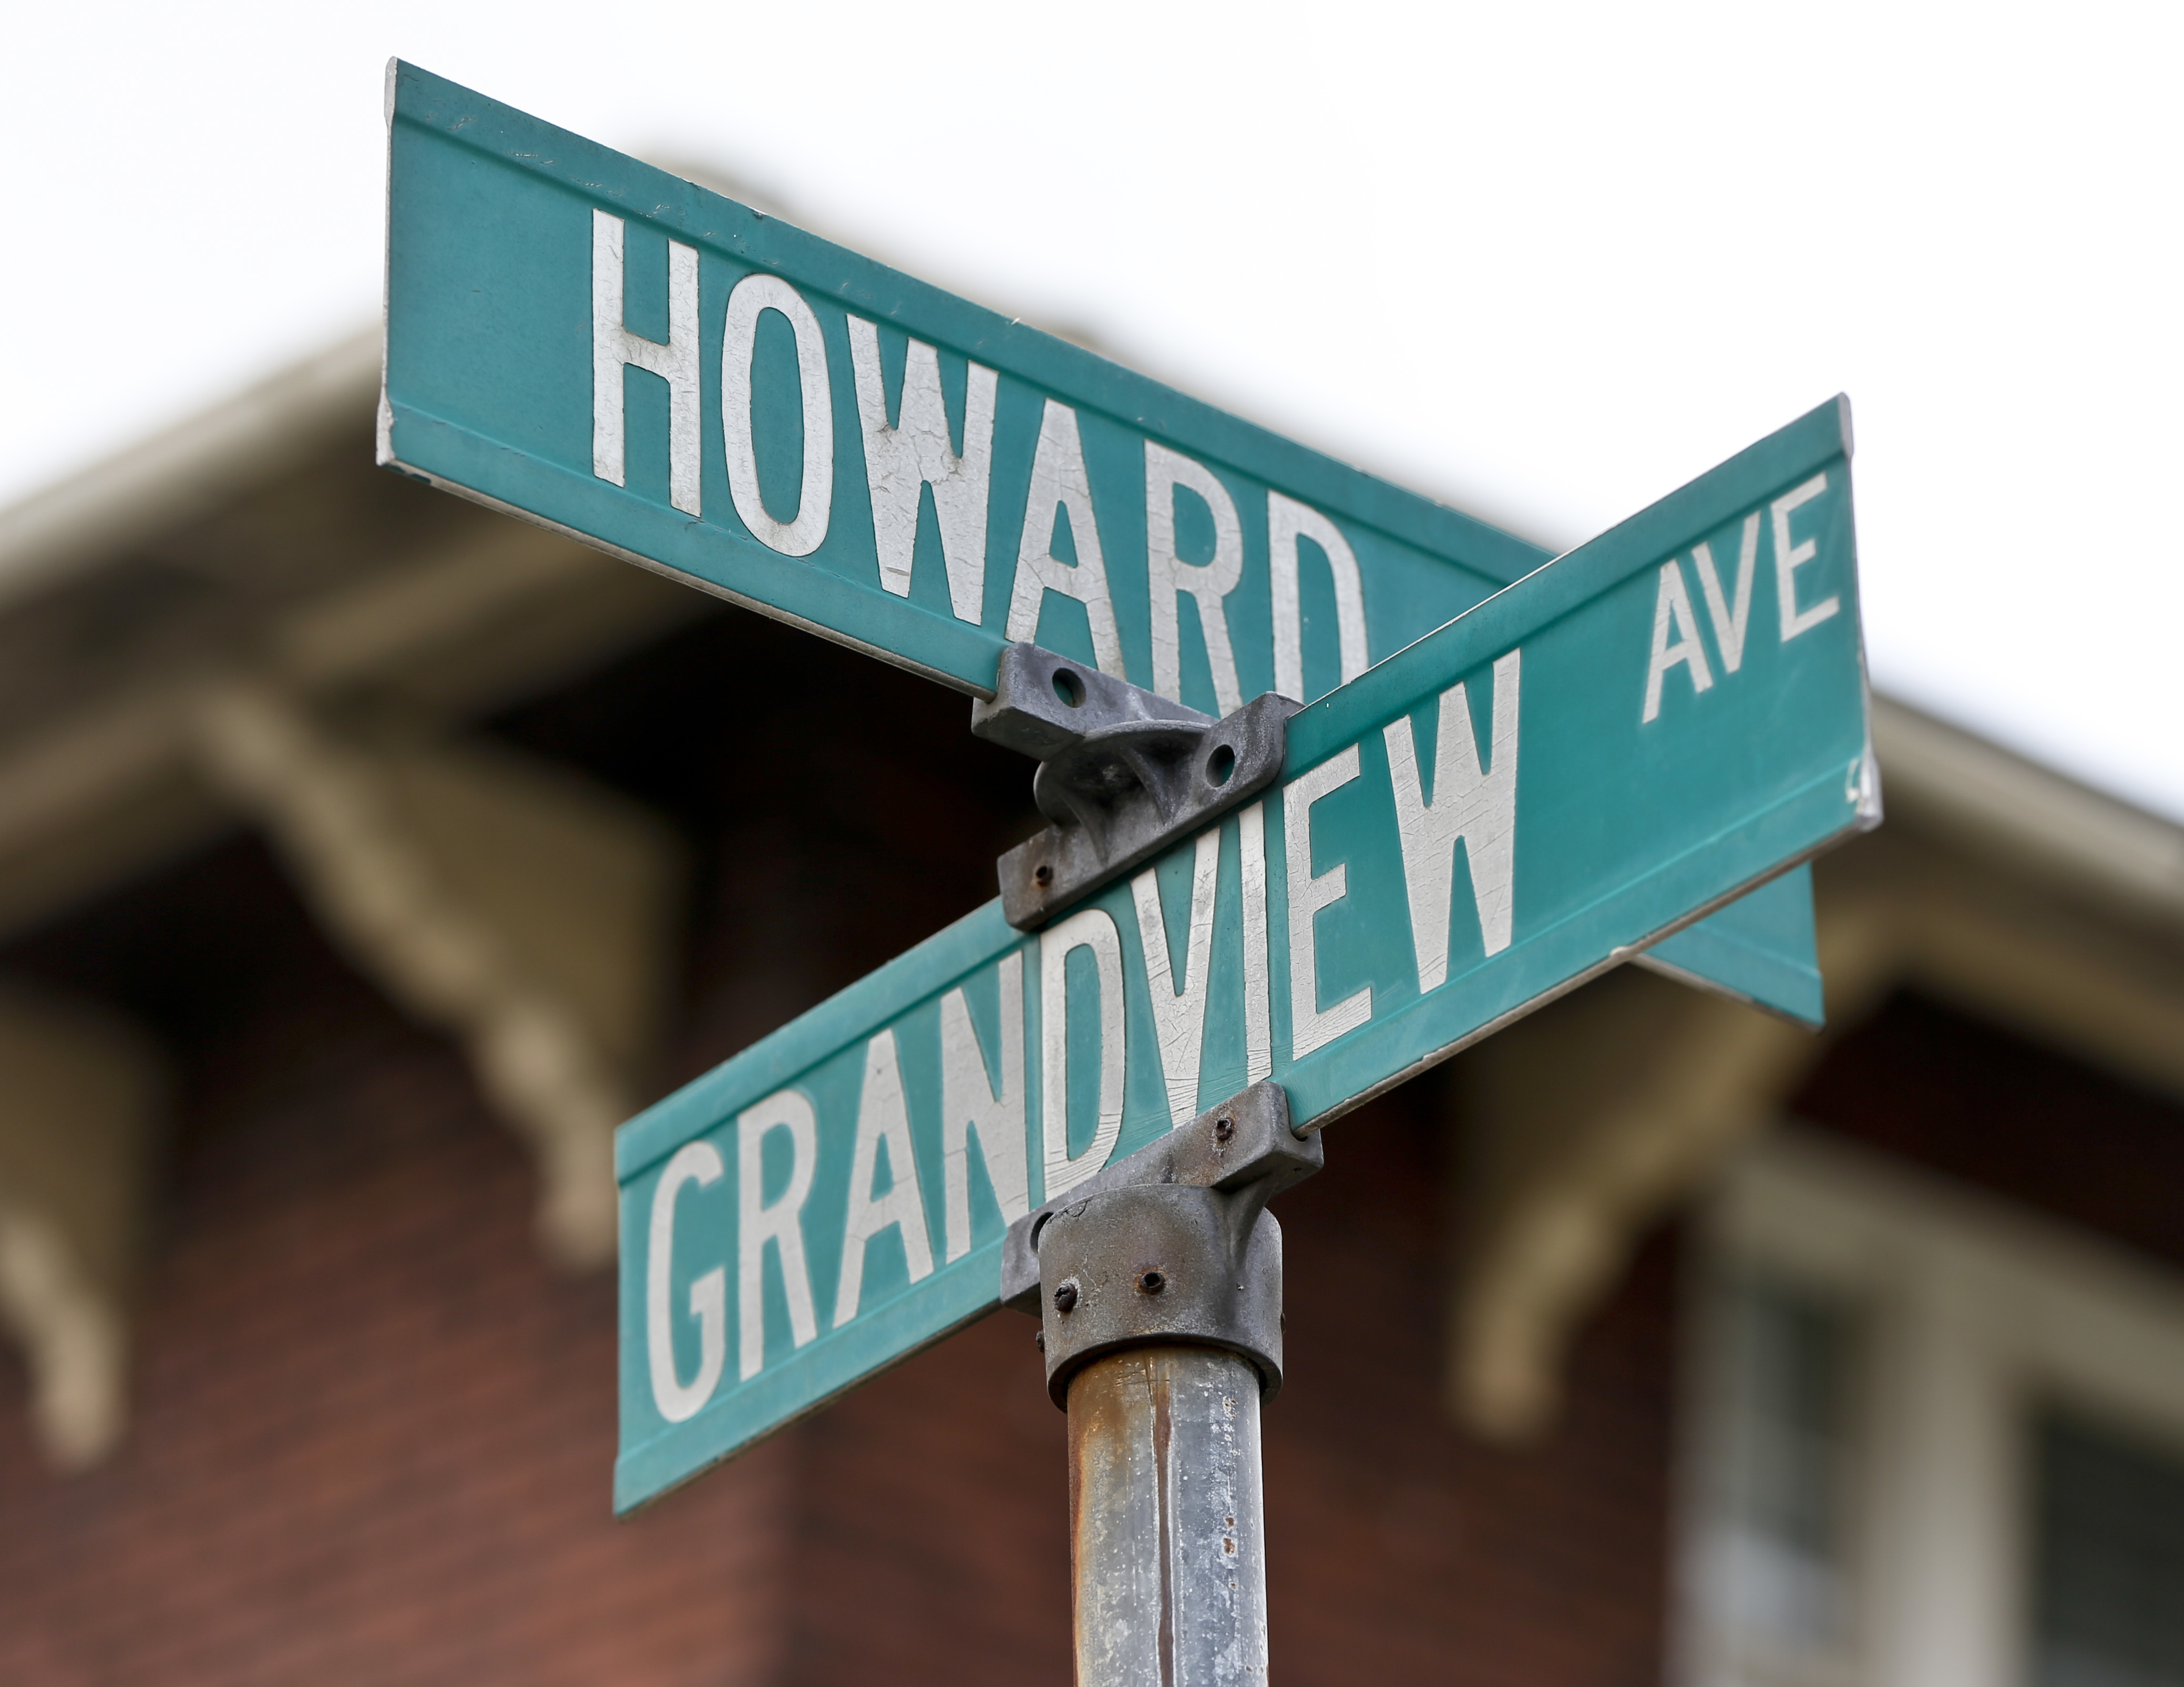 Street signs mark the intersection of Howard and Grandview Ave. on Wednesday, June 20, 2018, near where witnesses say a police officer fatally shot a 17-year-old boy just seconds after he fled from a traffic stop in a confrontation late Tuesday, in East Pittsburgh, Pa. (AP Photo/Keith Srakocic)